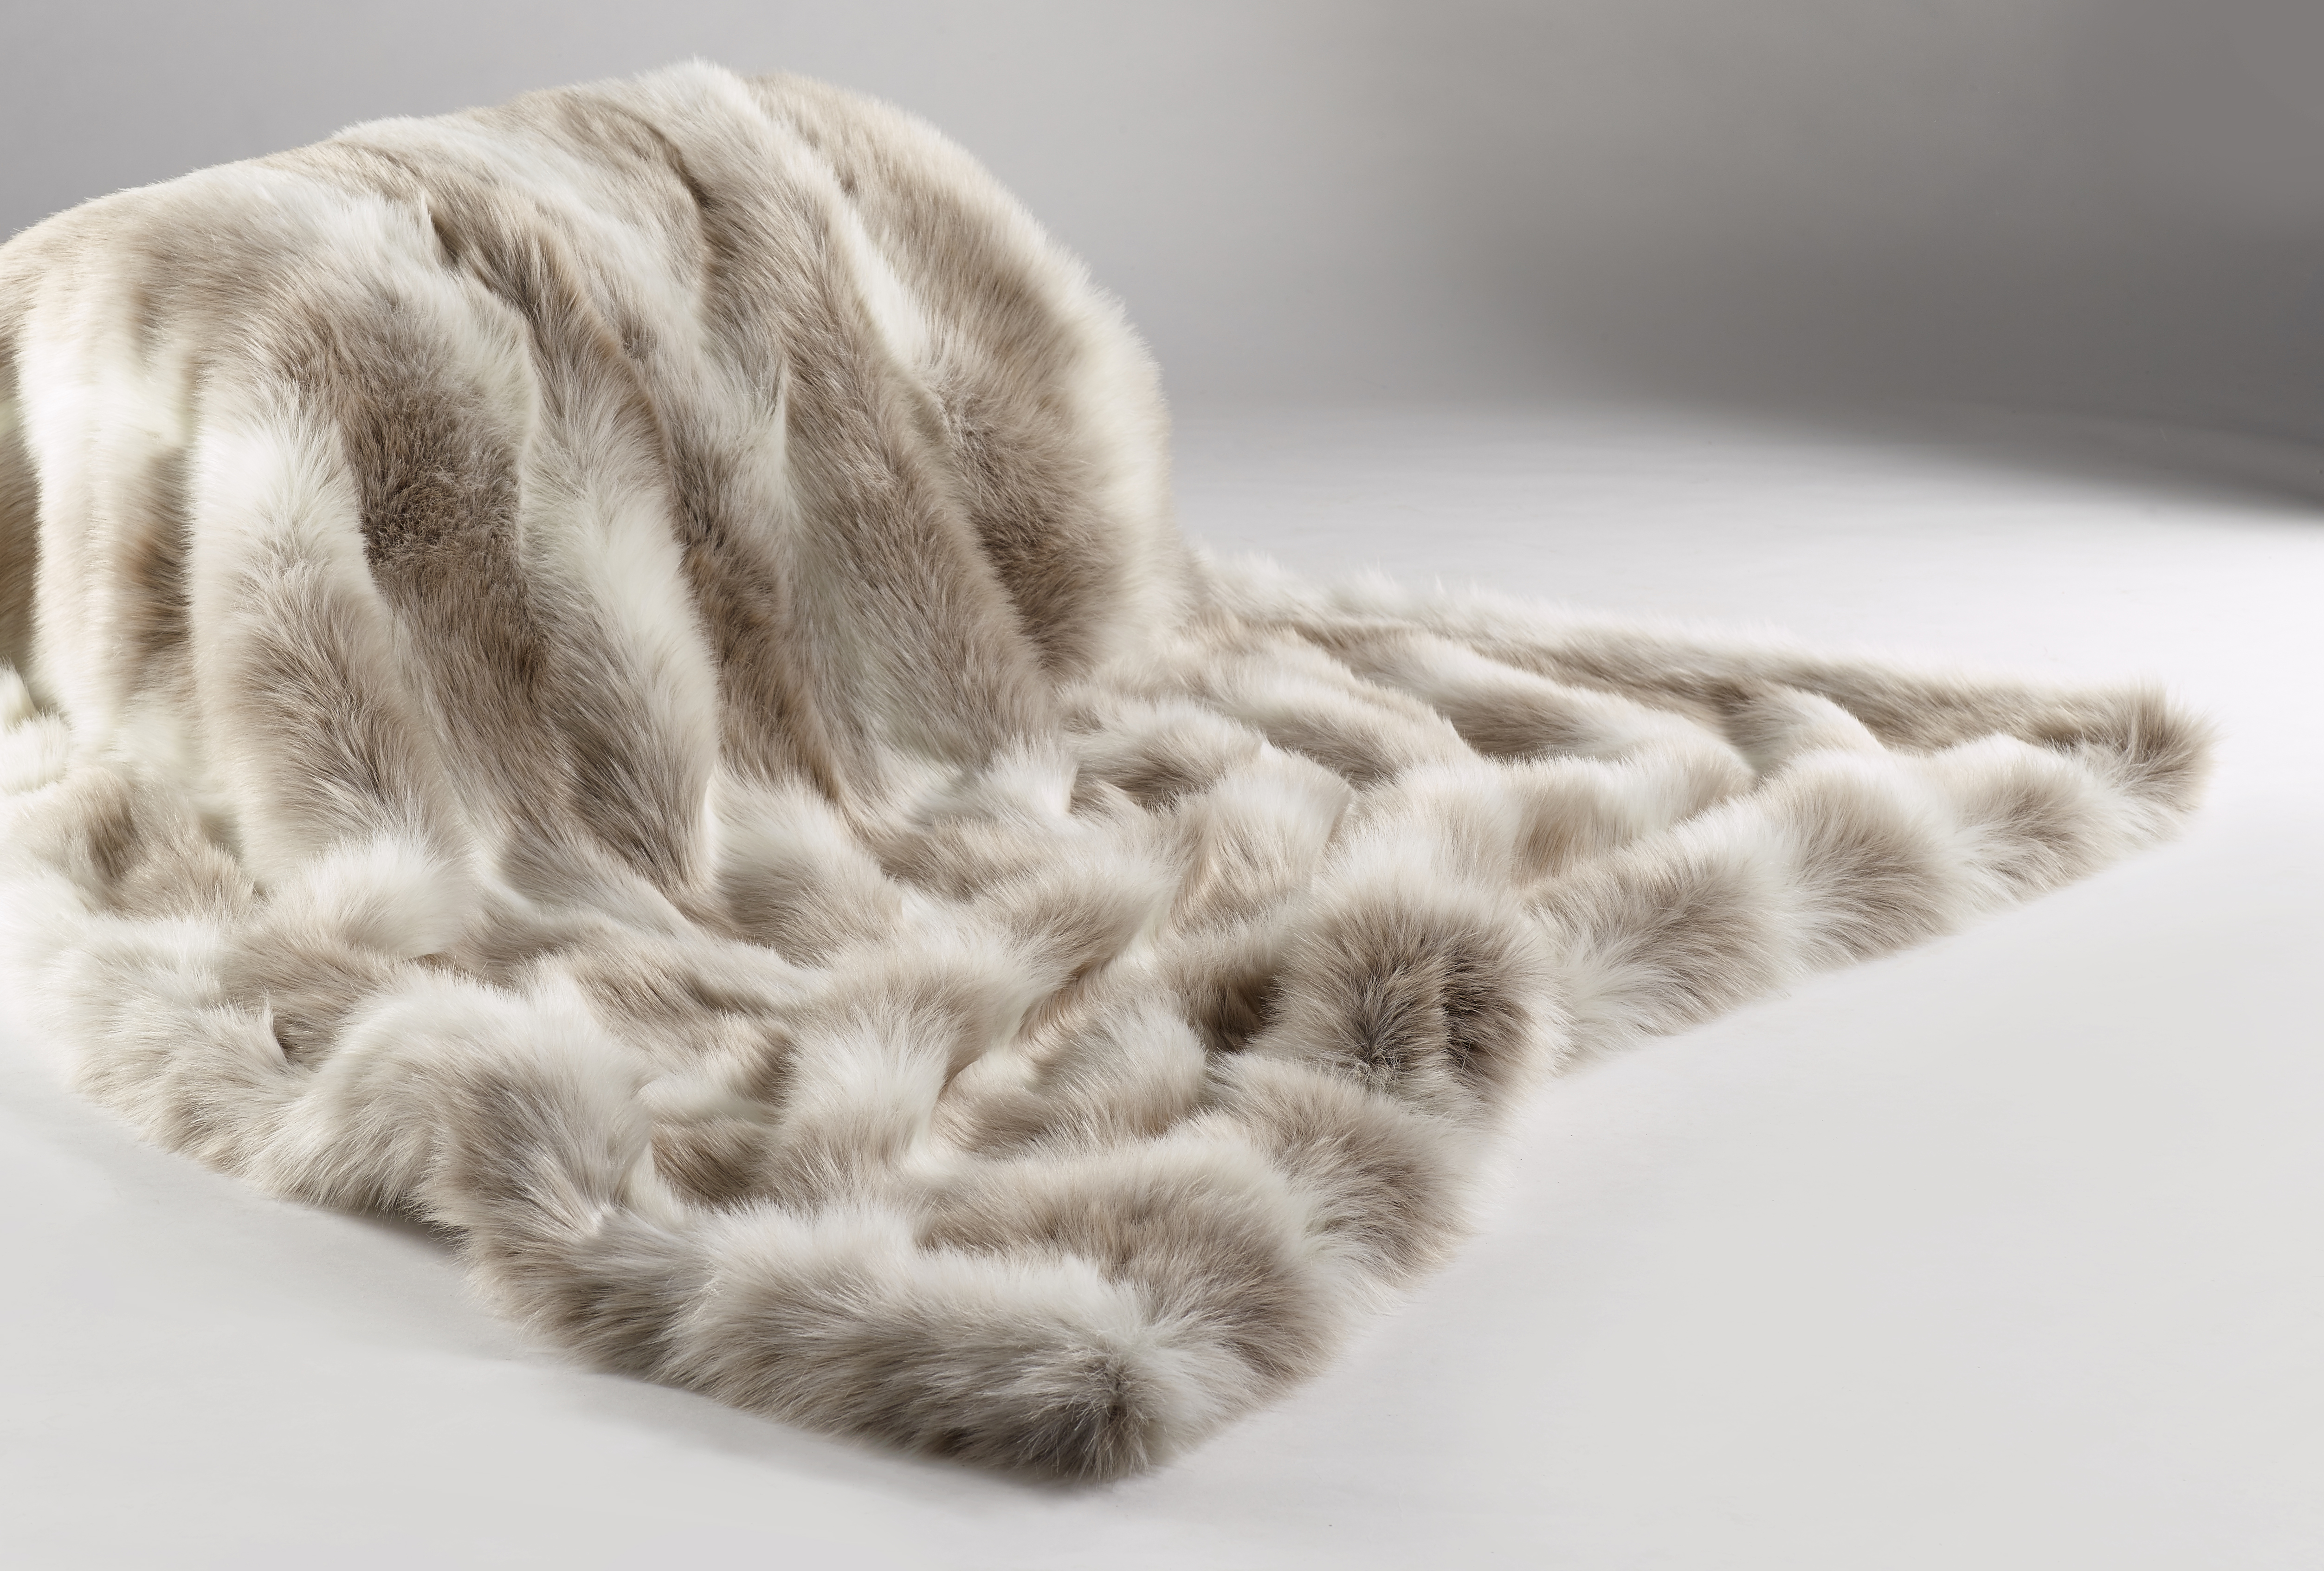 The Home Furnishings Company Reindeer Luxury Faux Fur Throw 140x240 cms